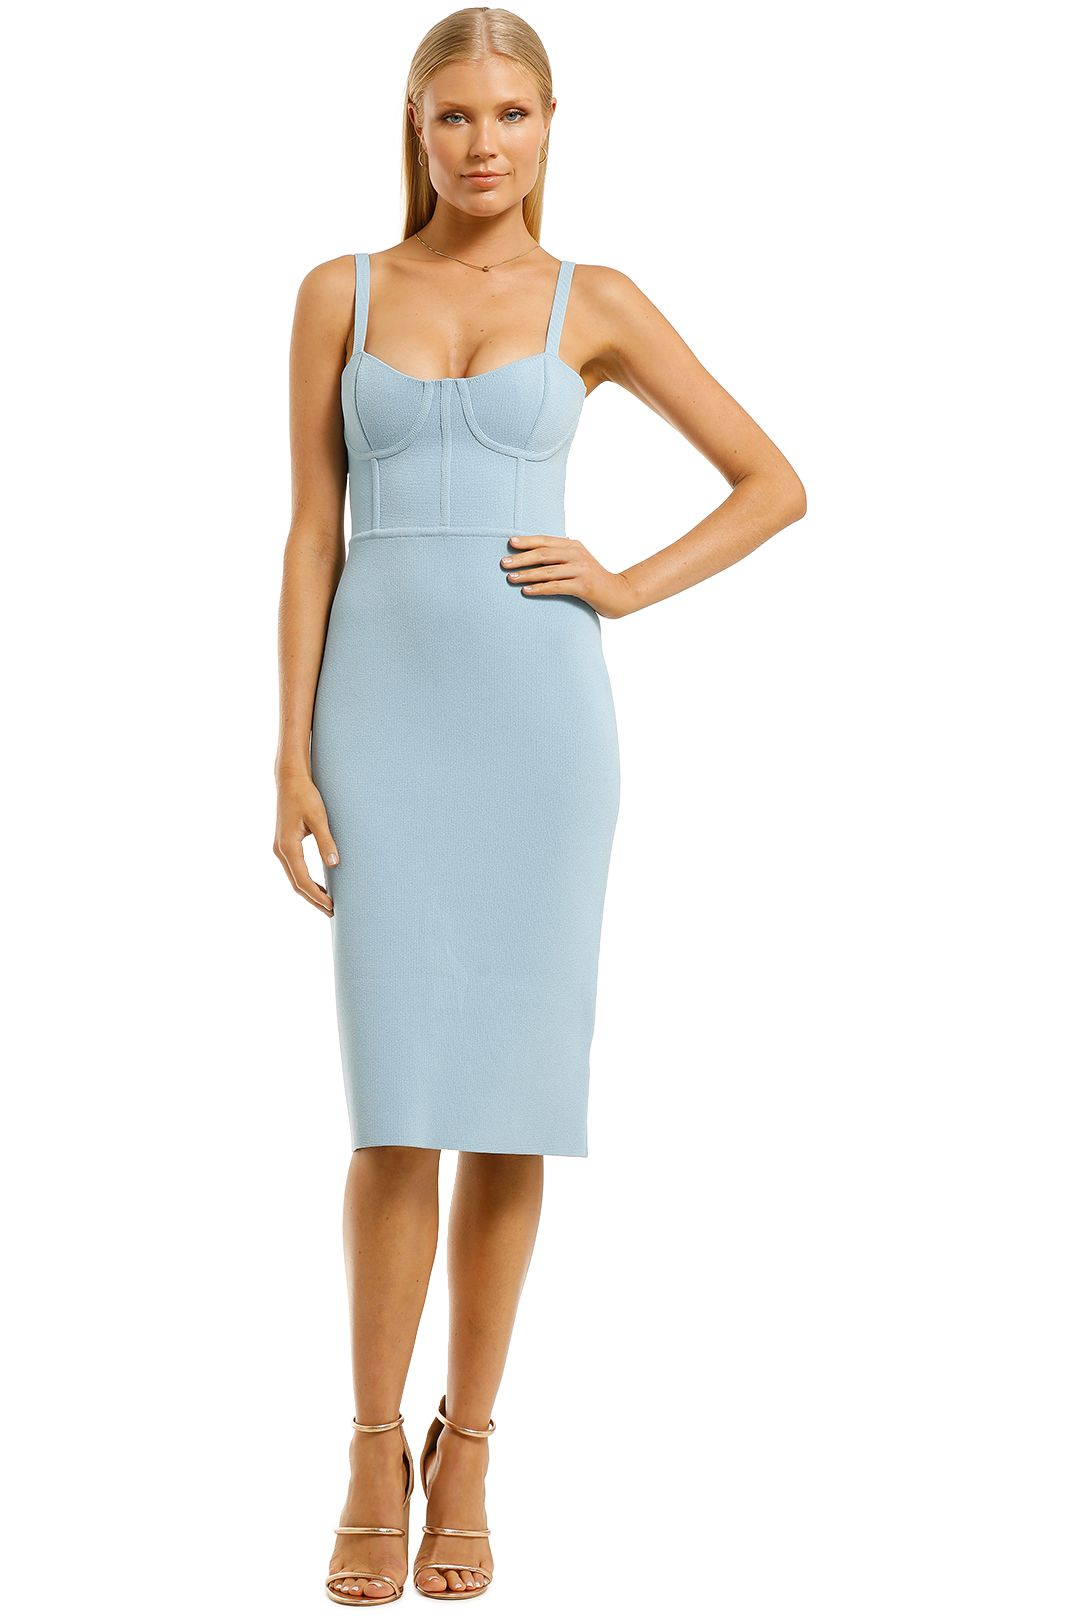 Scanlan-Theodore-Crepe-Knit-Bustier-Dress-Pale-Blue-Front